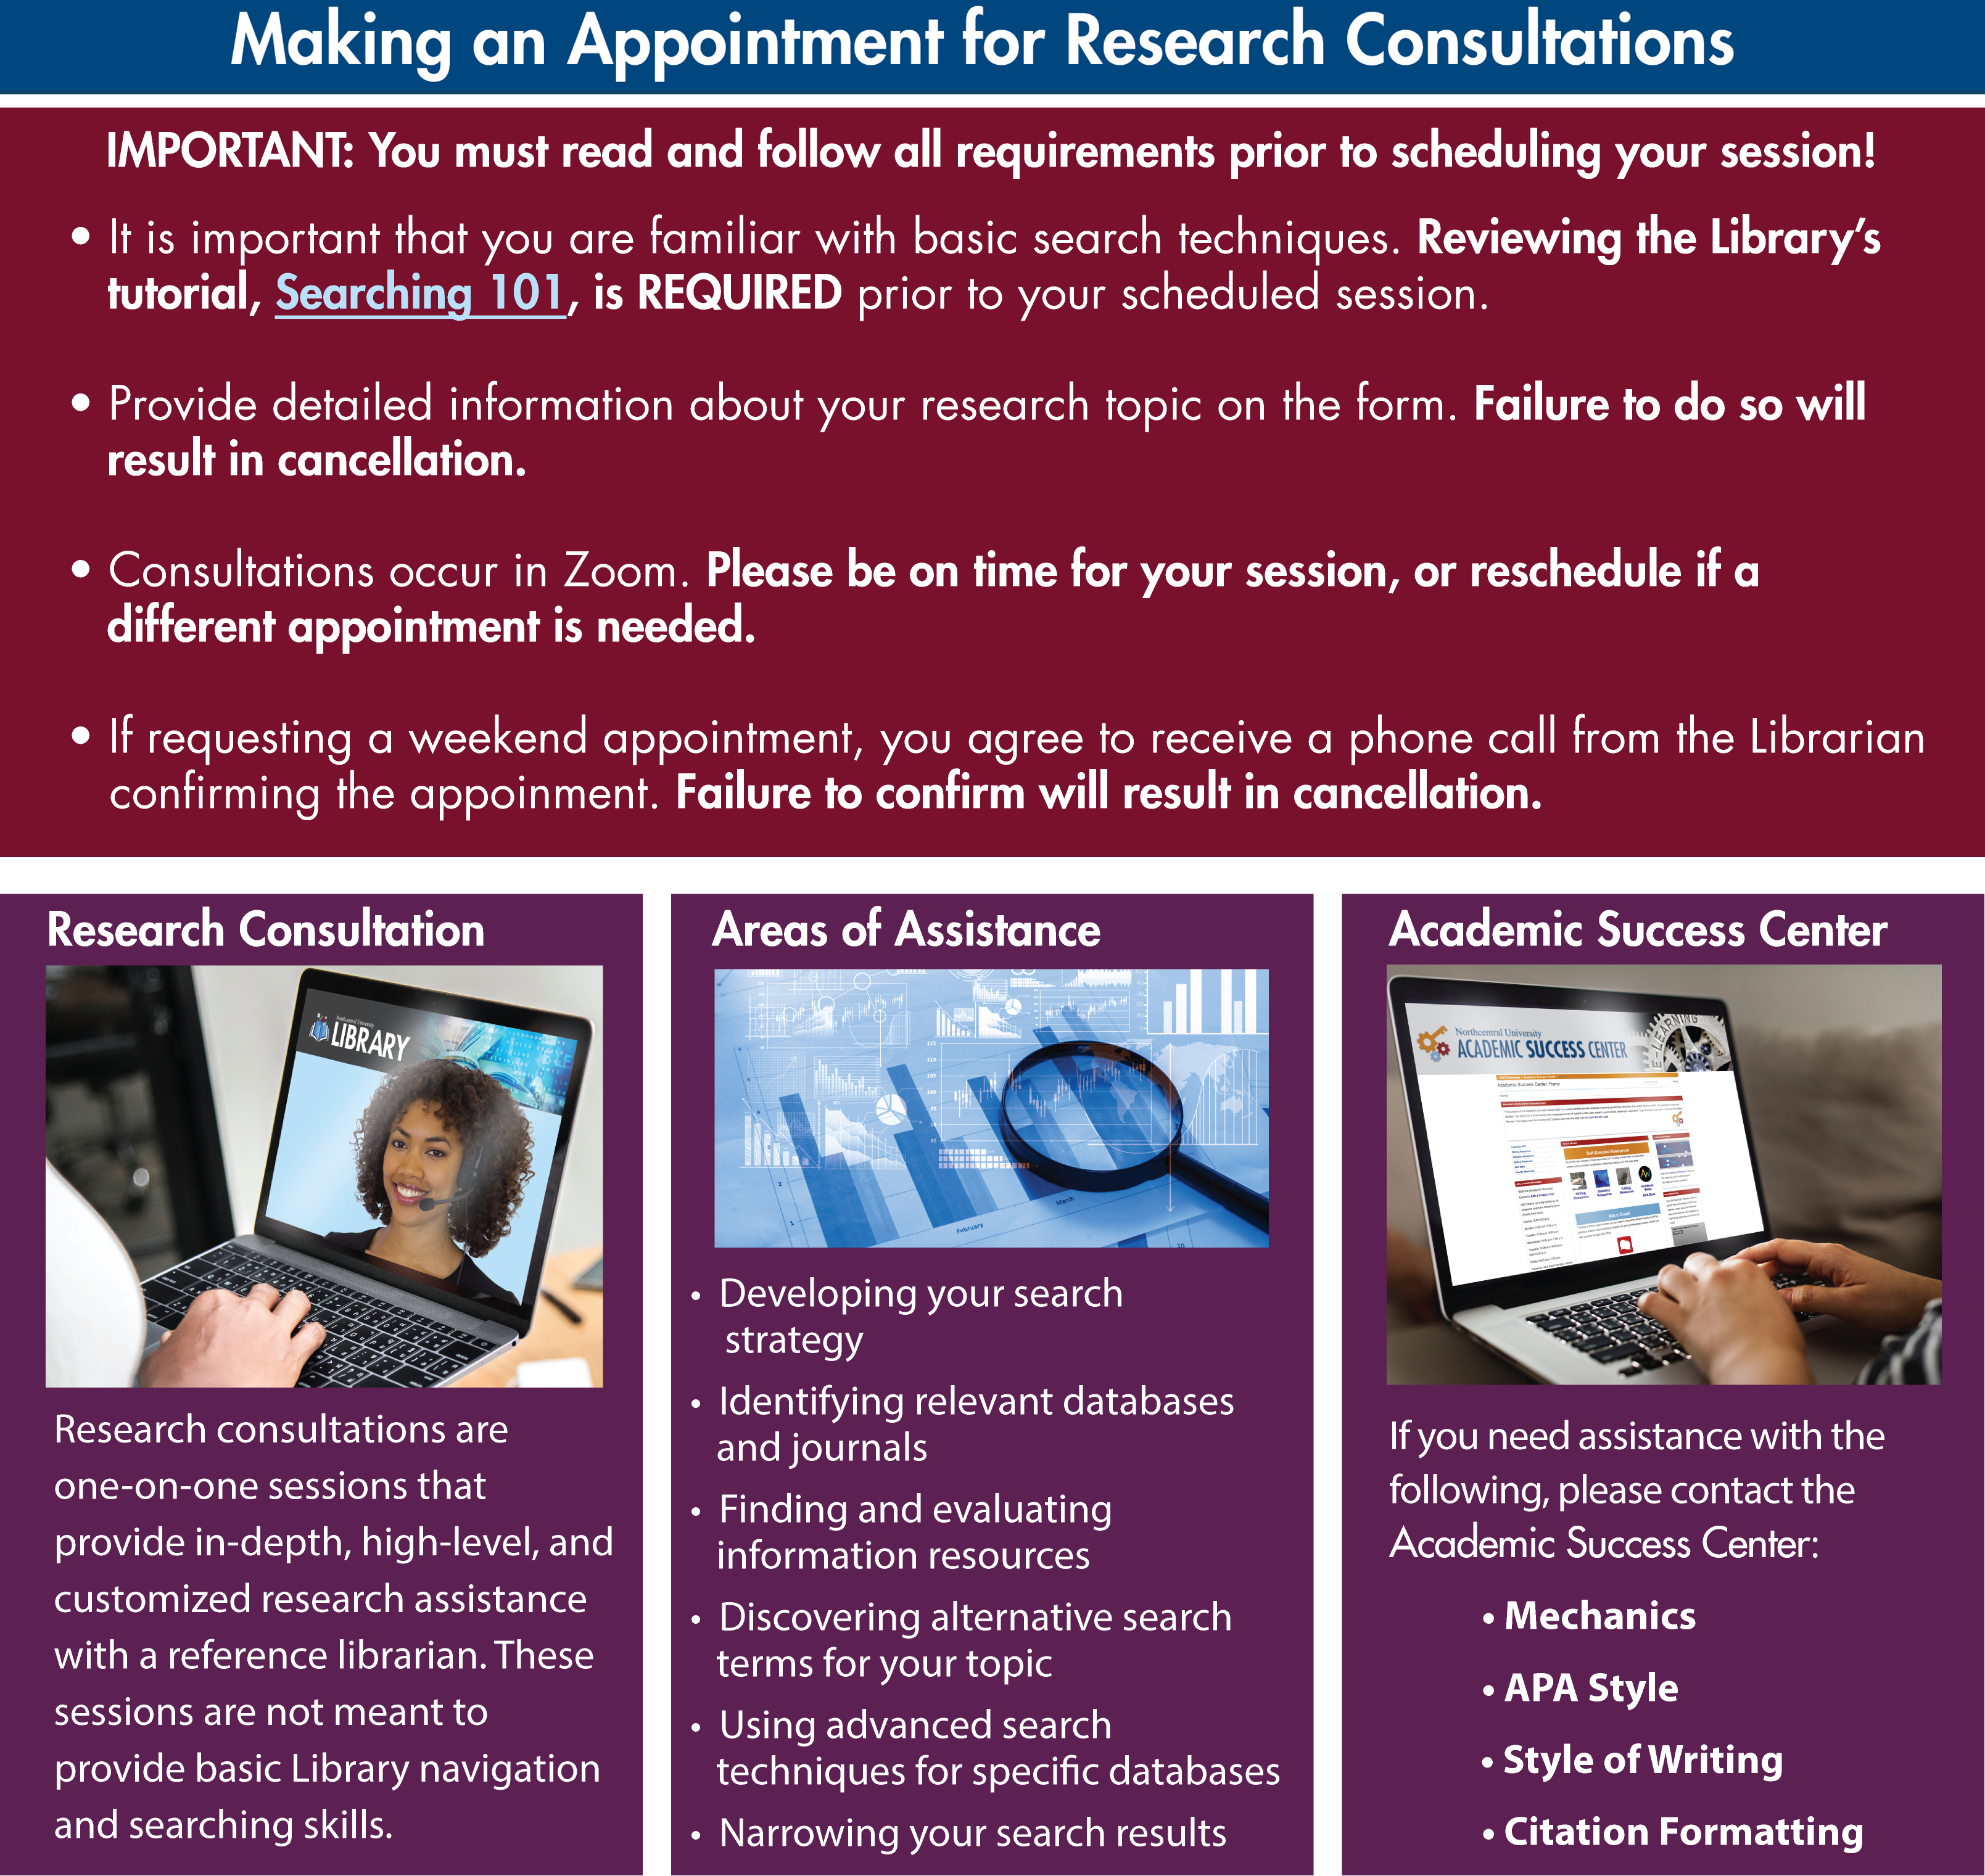 Making an Appointment for Research Consultations